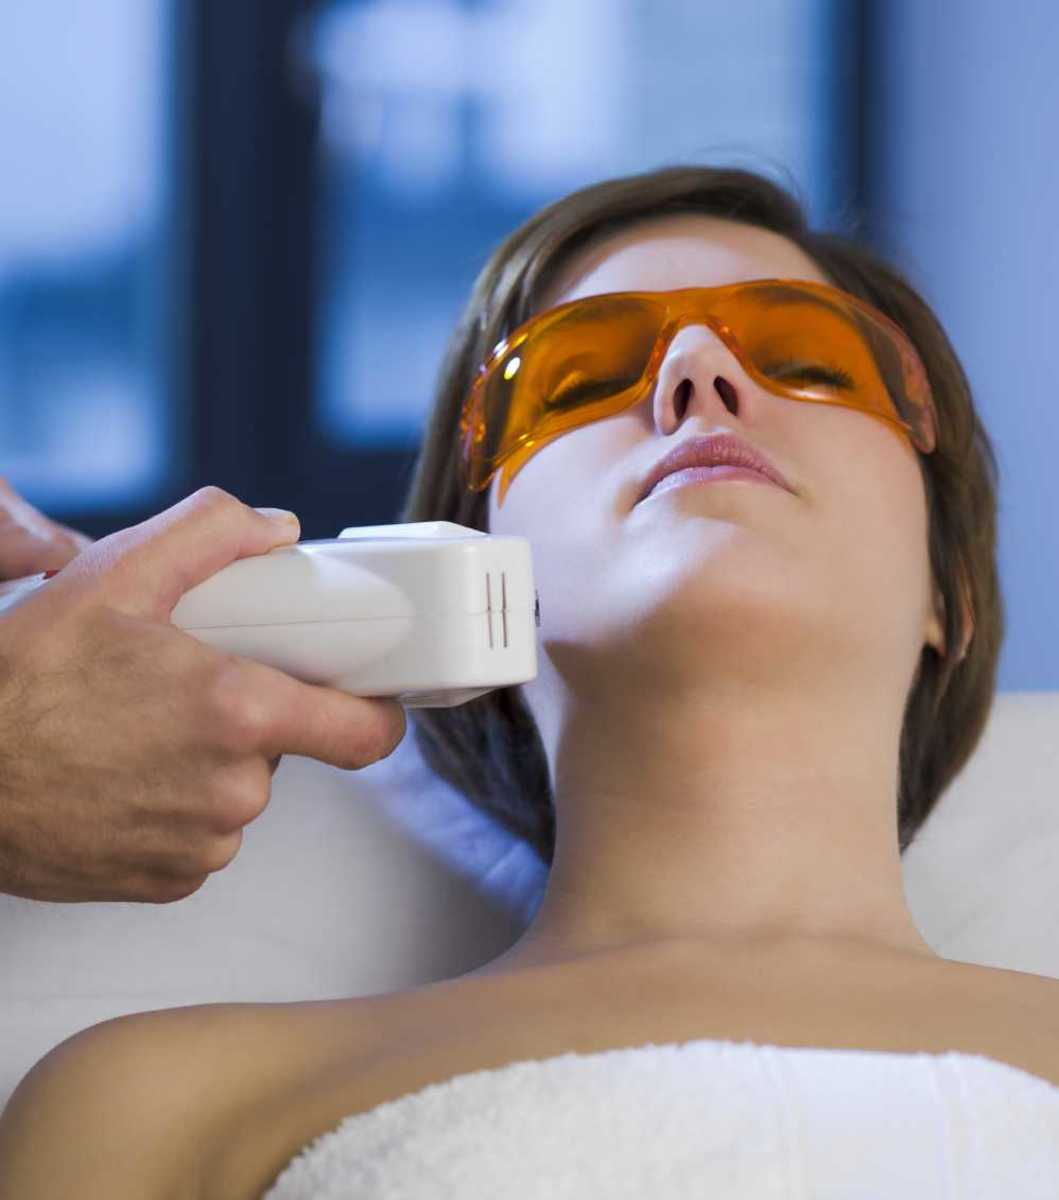 What It's Like to Get an IPL Treatment for Skin Pigmentation - The